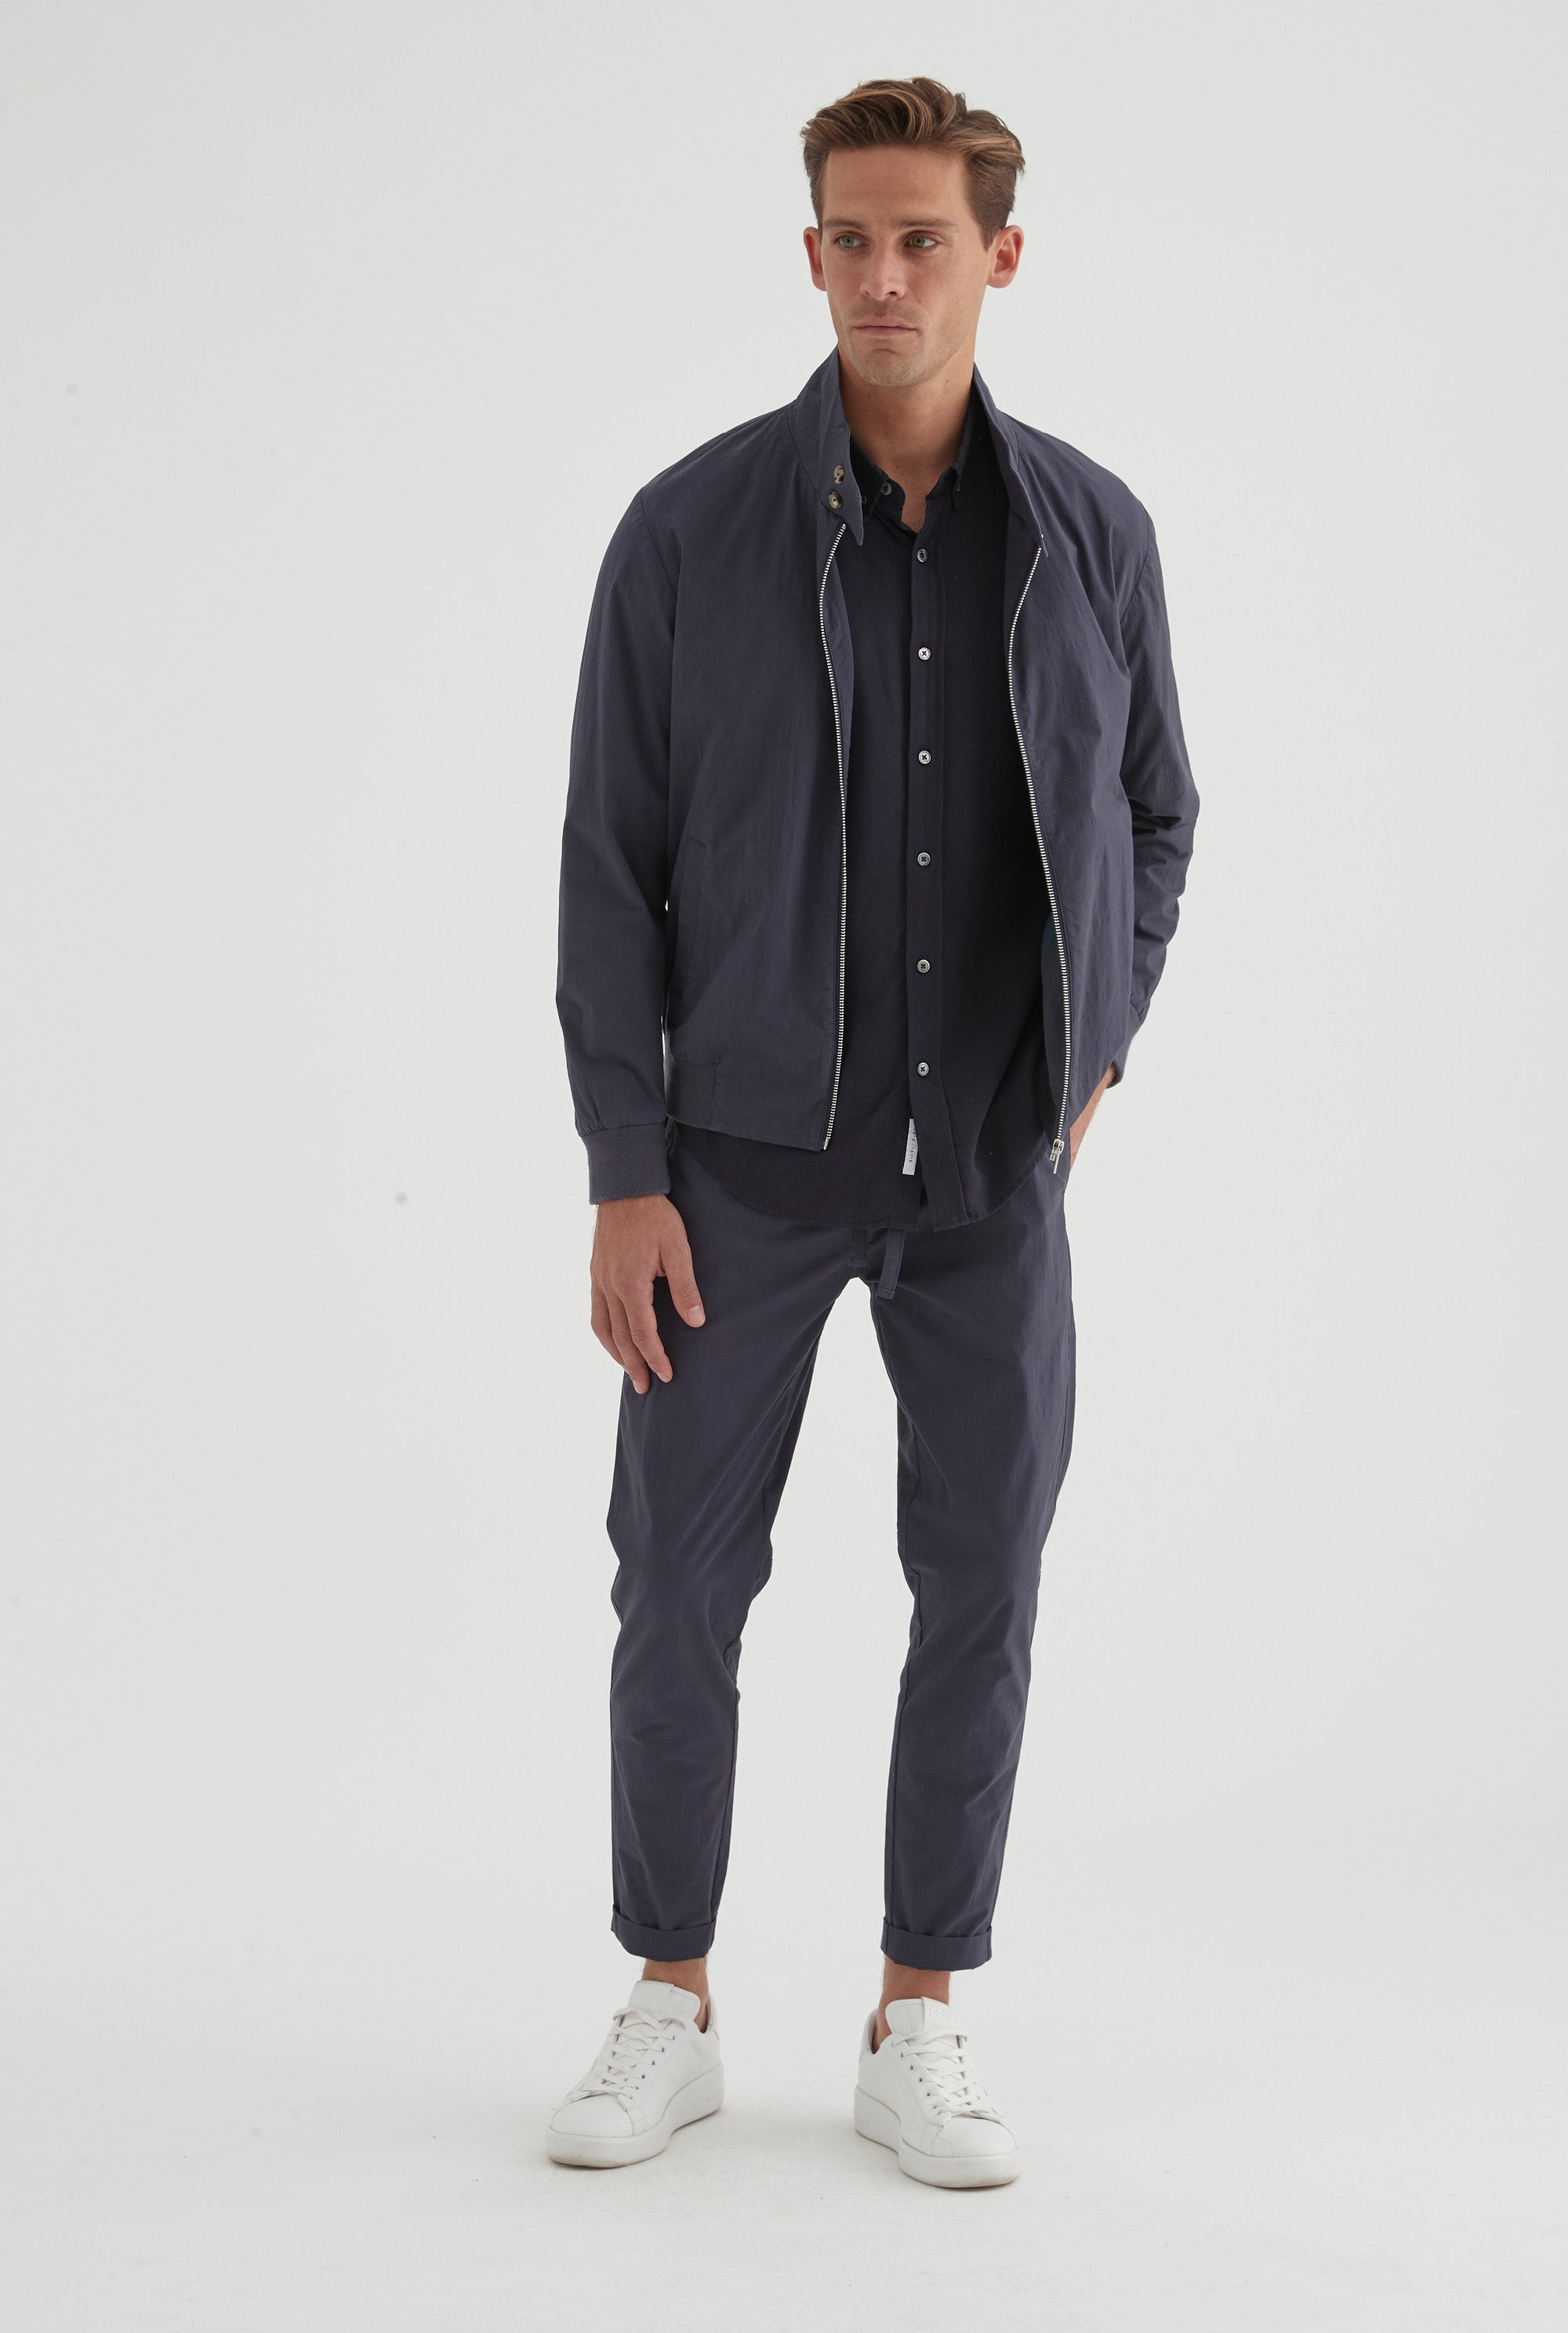 Cotton Stretch Sports Jacket - Navy